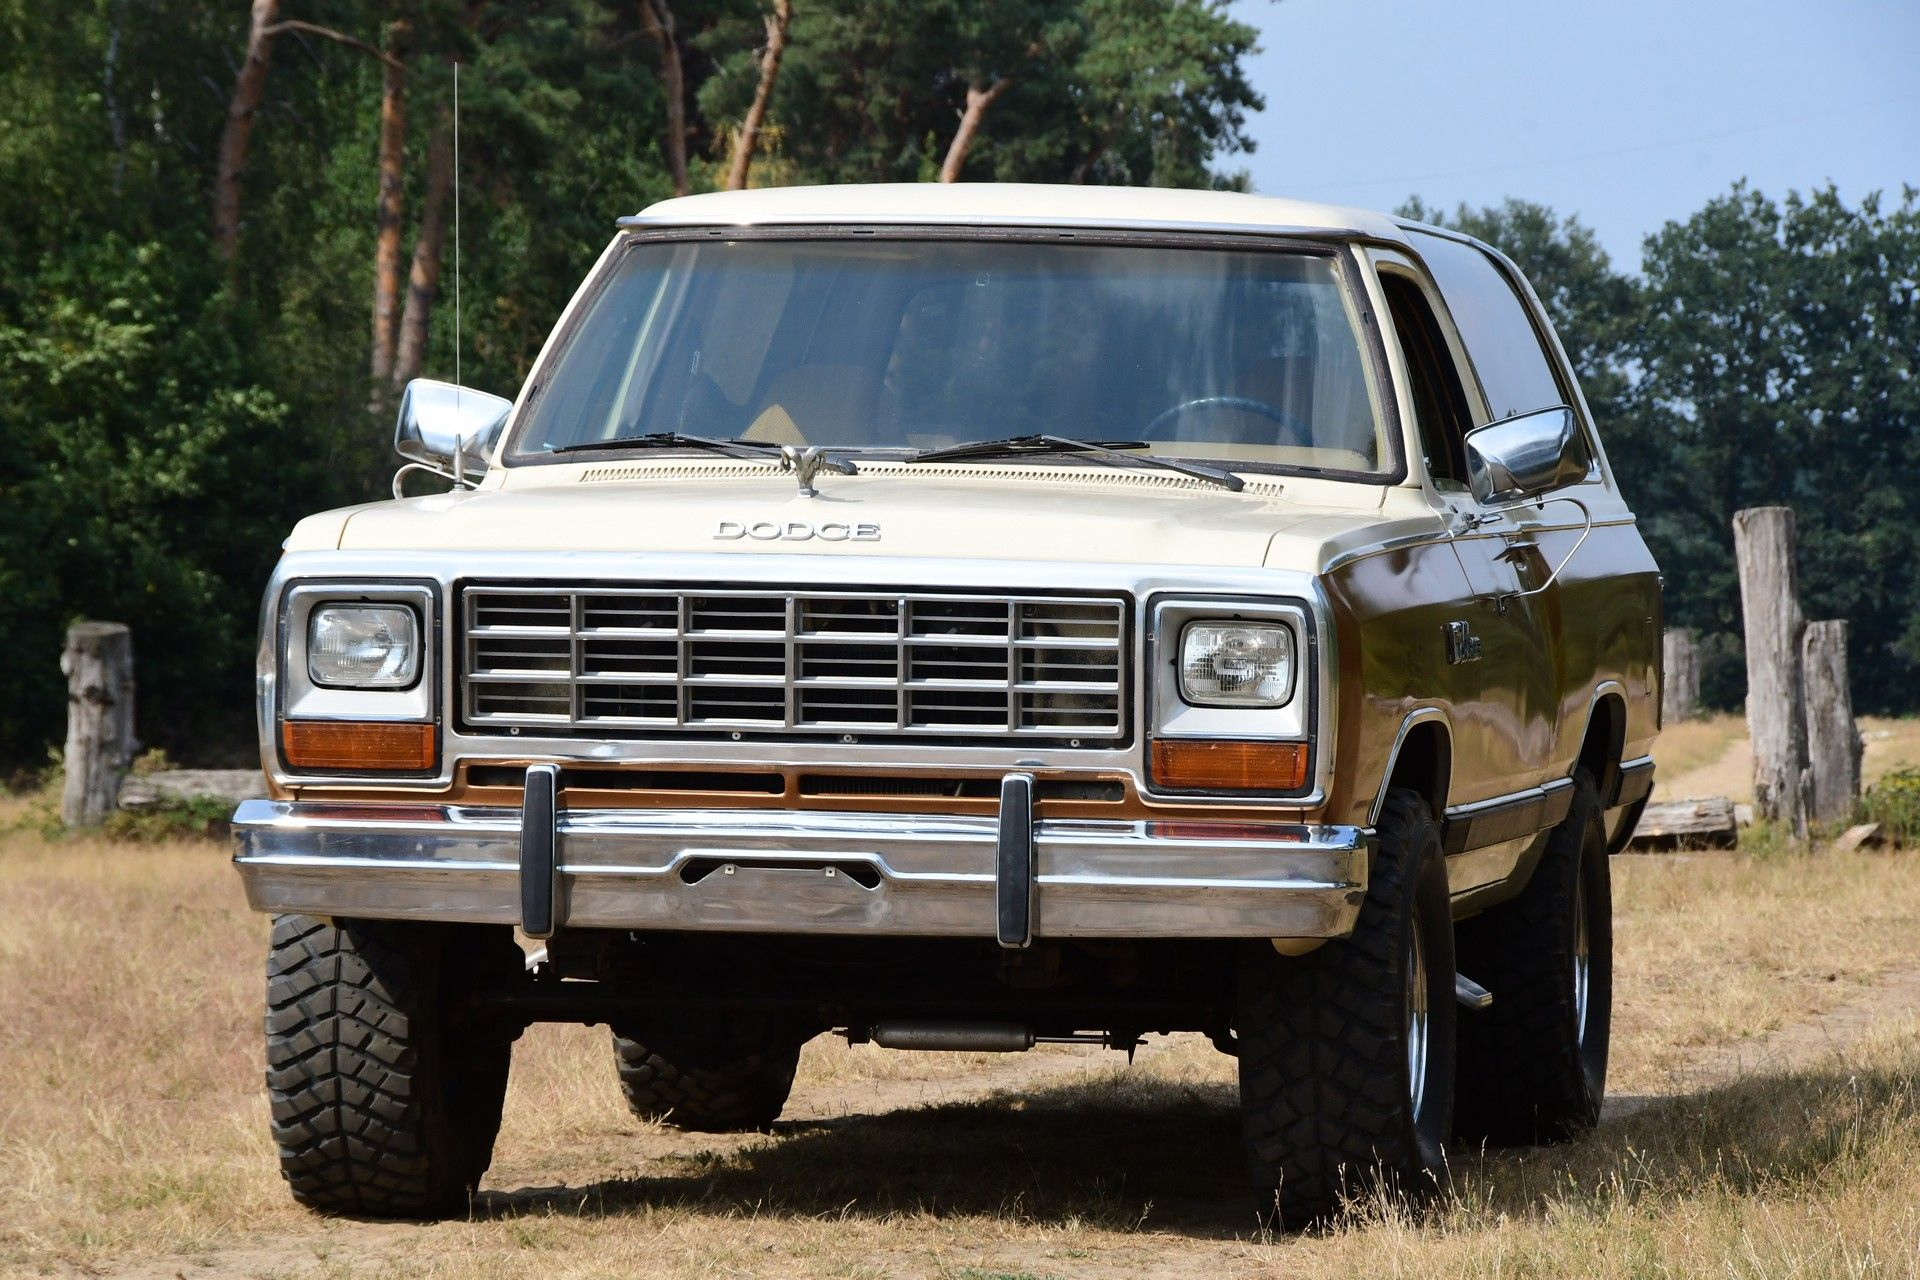 Dodge Ramcharger 5 9 V8 360 Stuurman Classic Cars